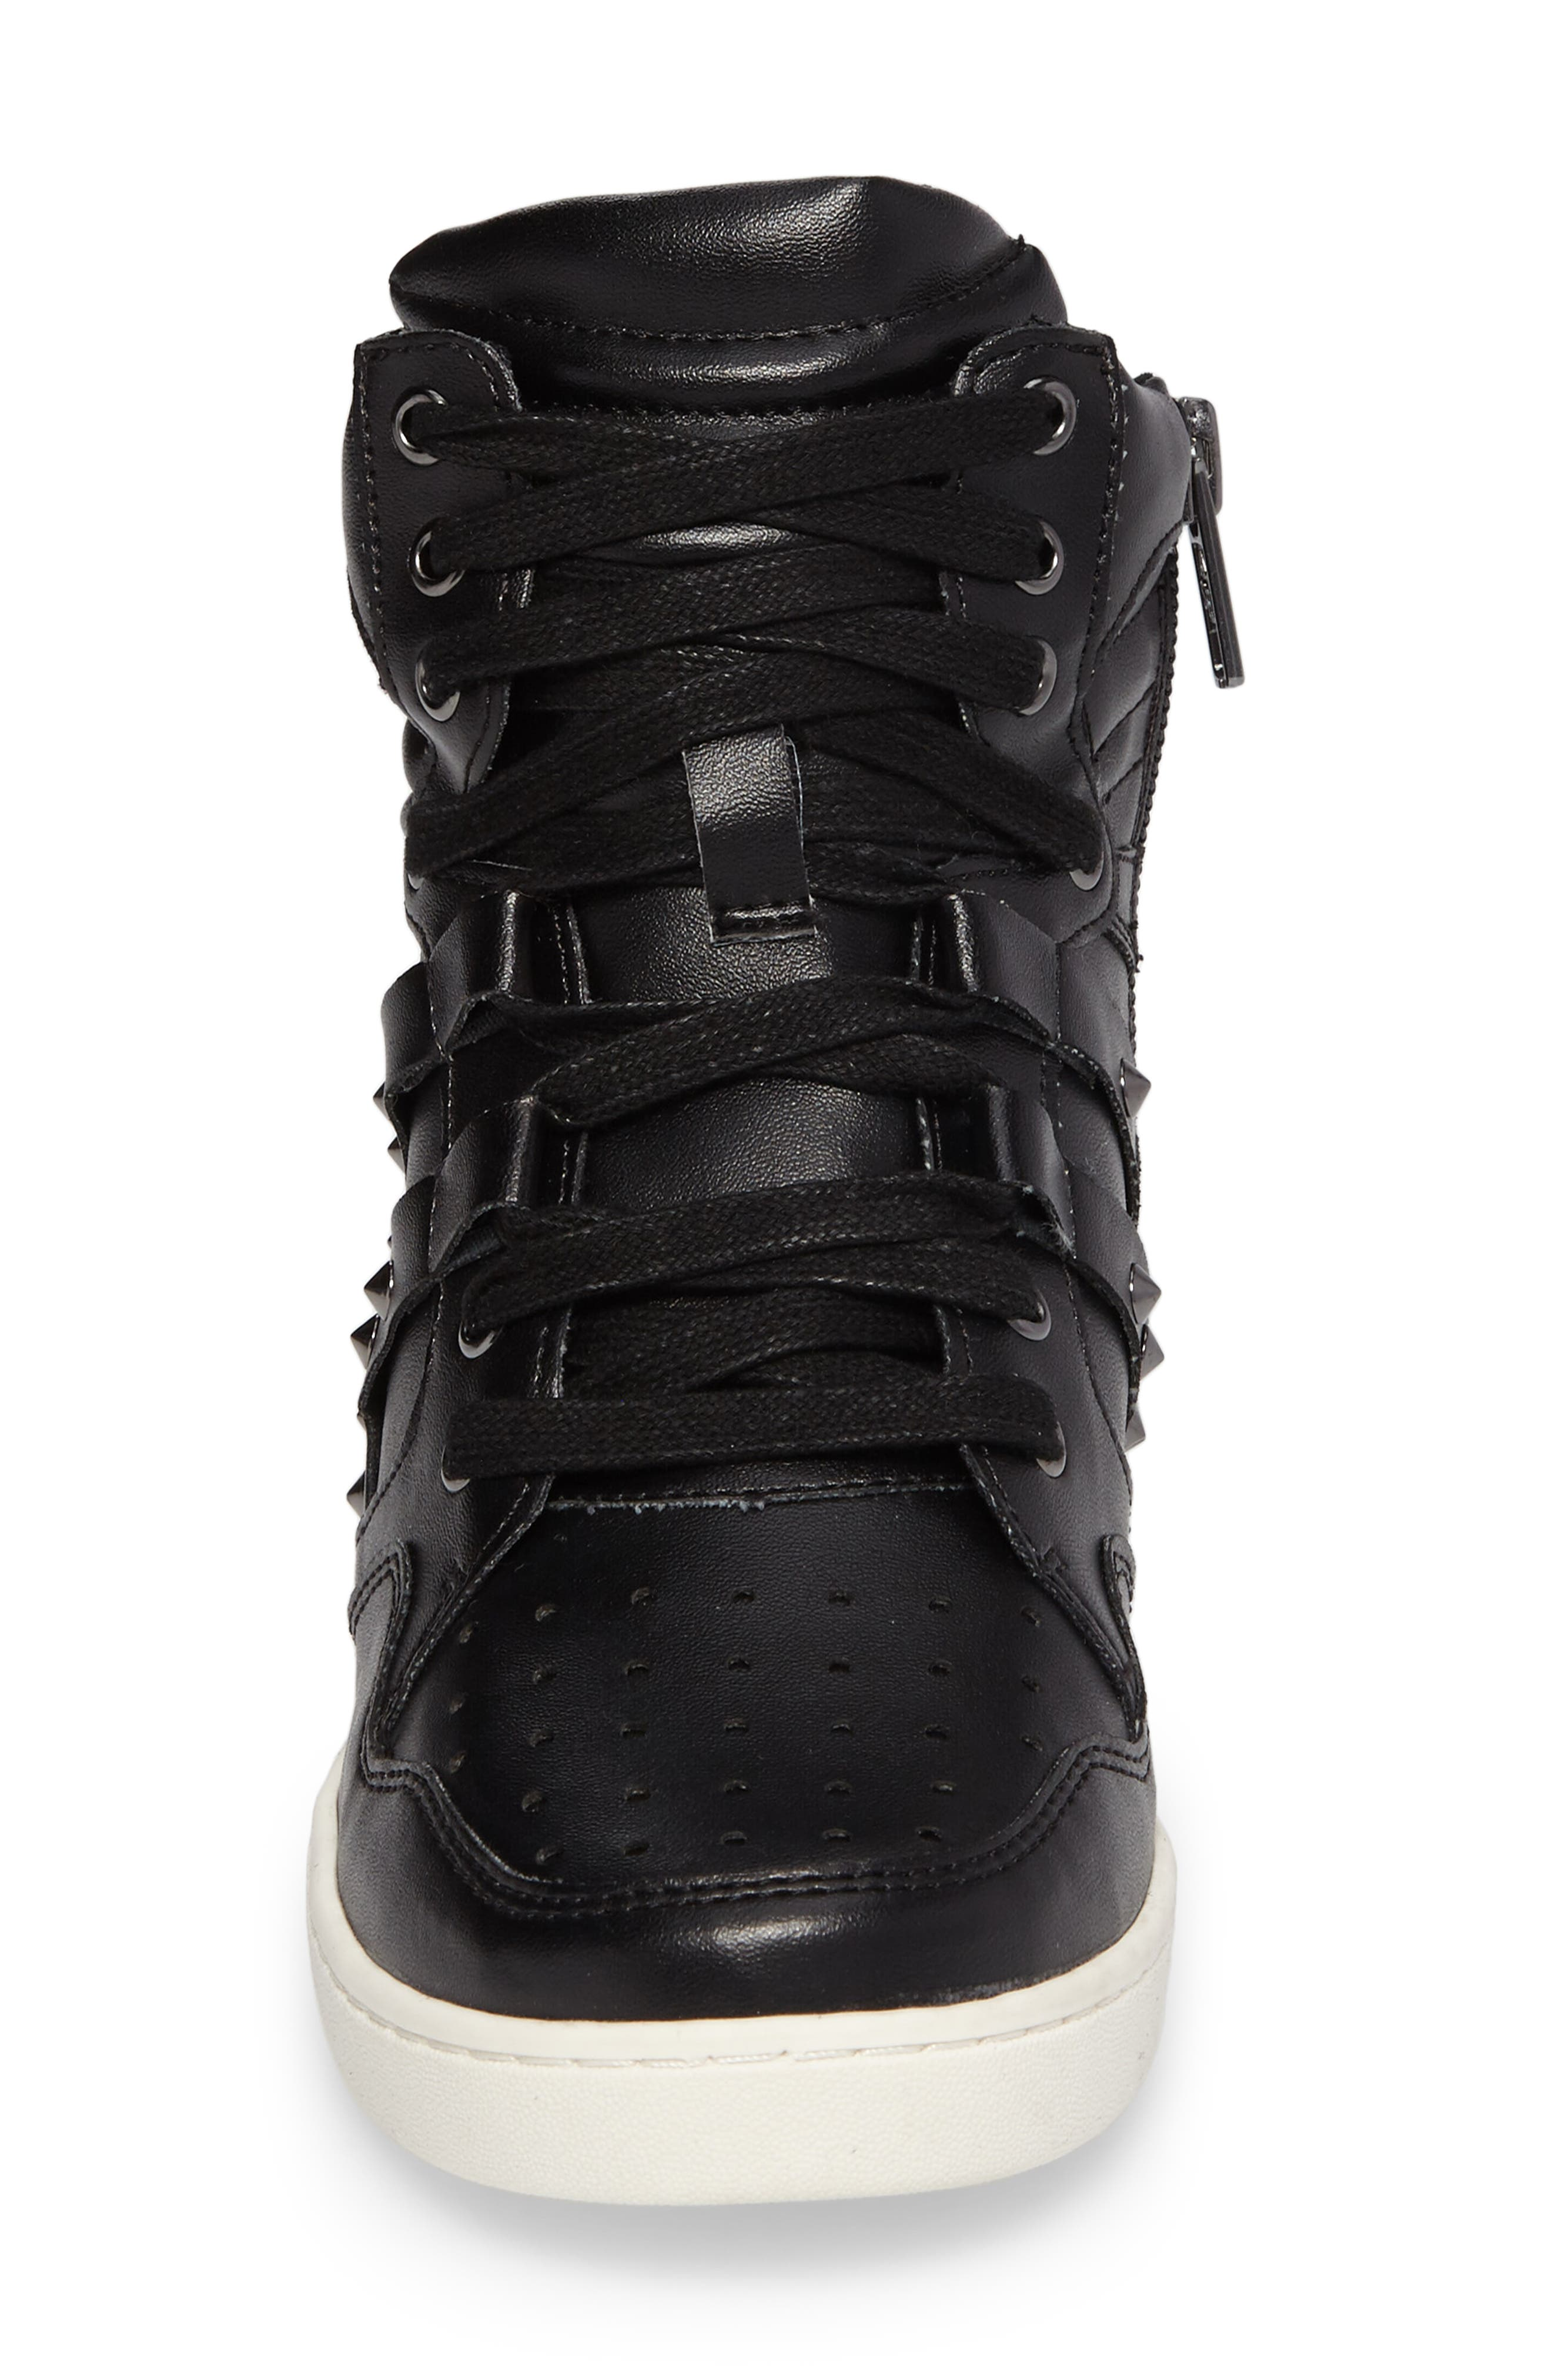 Boogie Chic Studded High Top Sneaker,                             Alternate thumbnail 4, color,                             Black Faux Leather